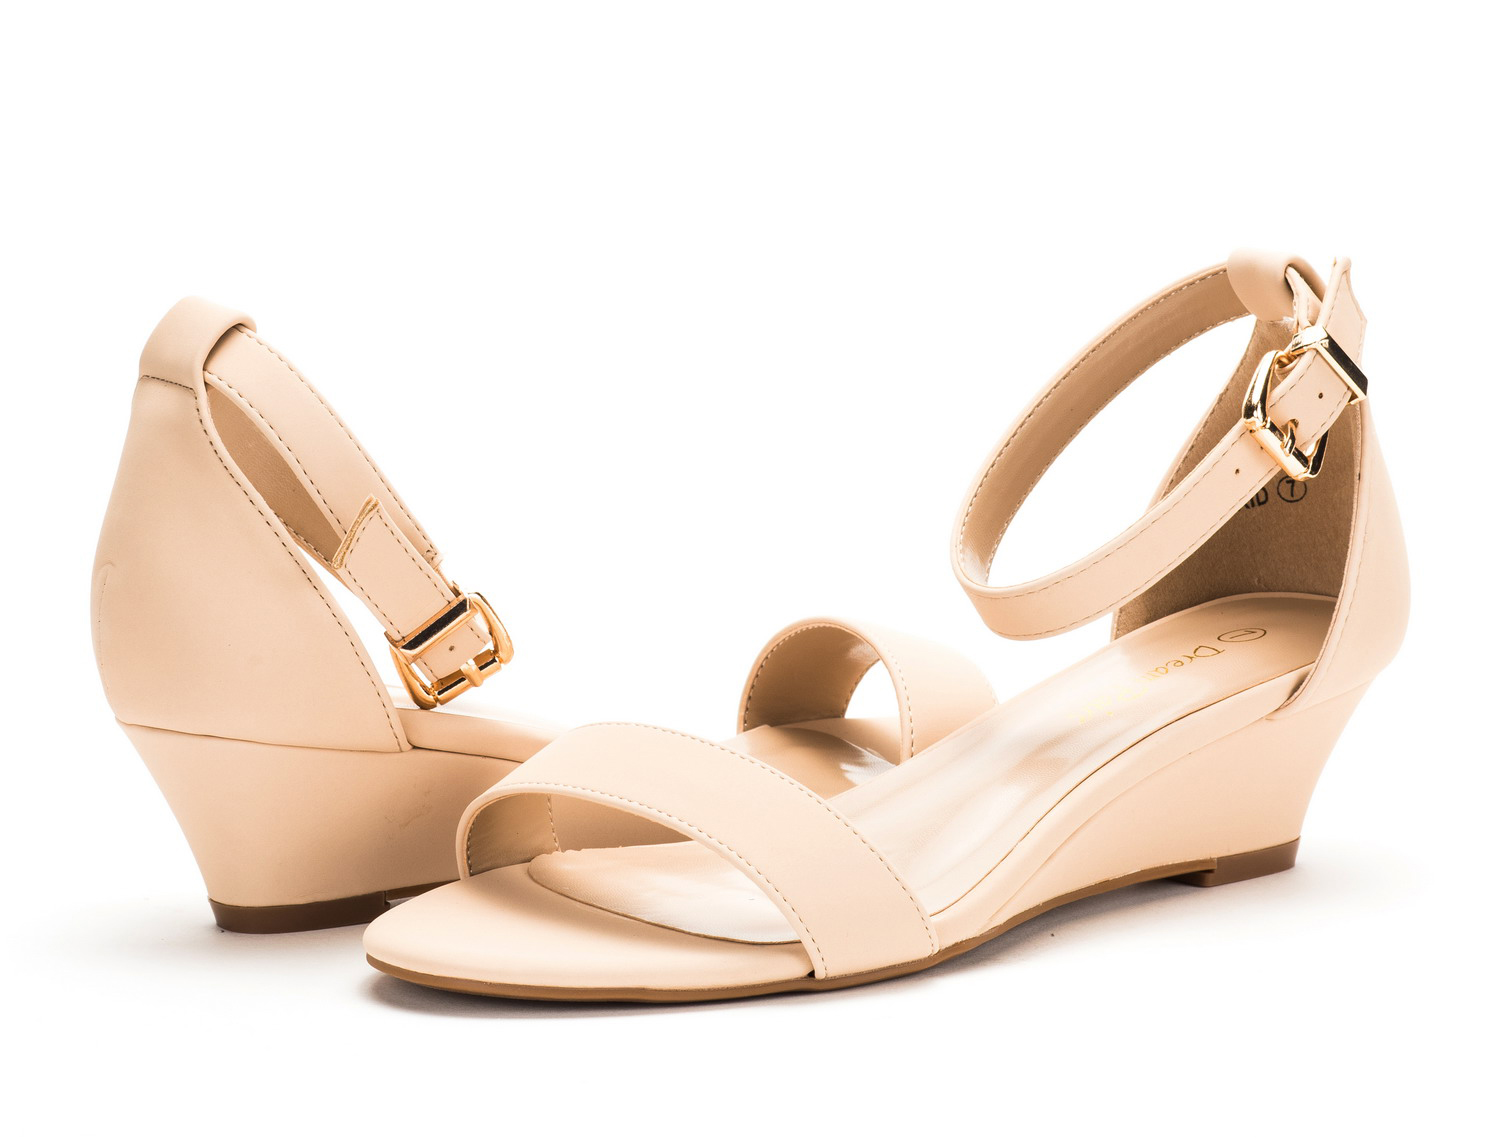 DREAM-PAIRS-Women-039-s-Ankle-Strap-Low-Wedge-Sandals-Open-Toe-Casual-Dress-Shoes thumbnail 26